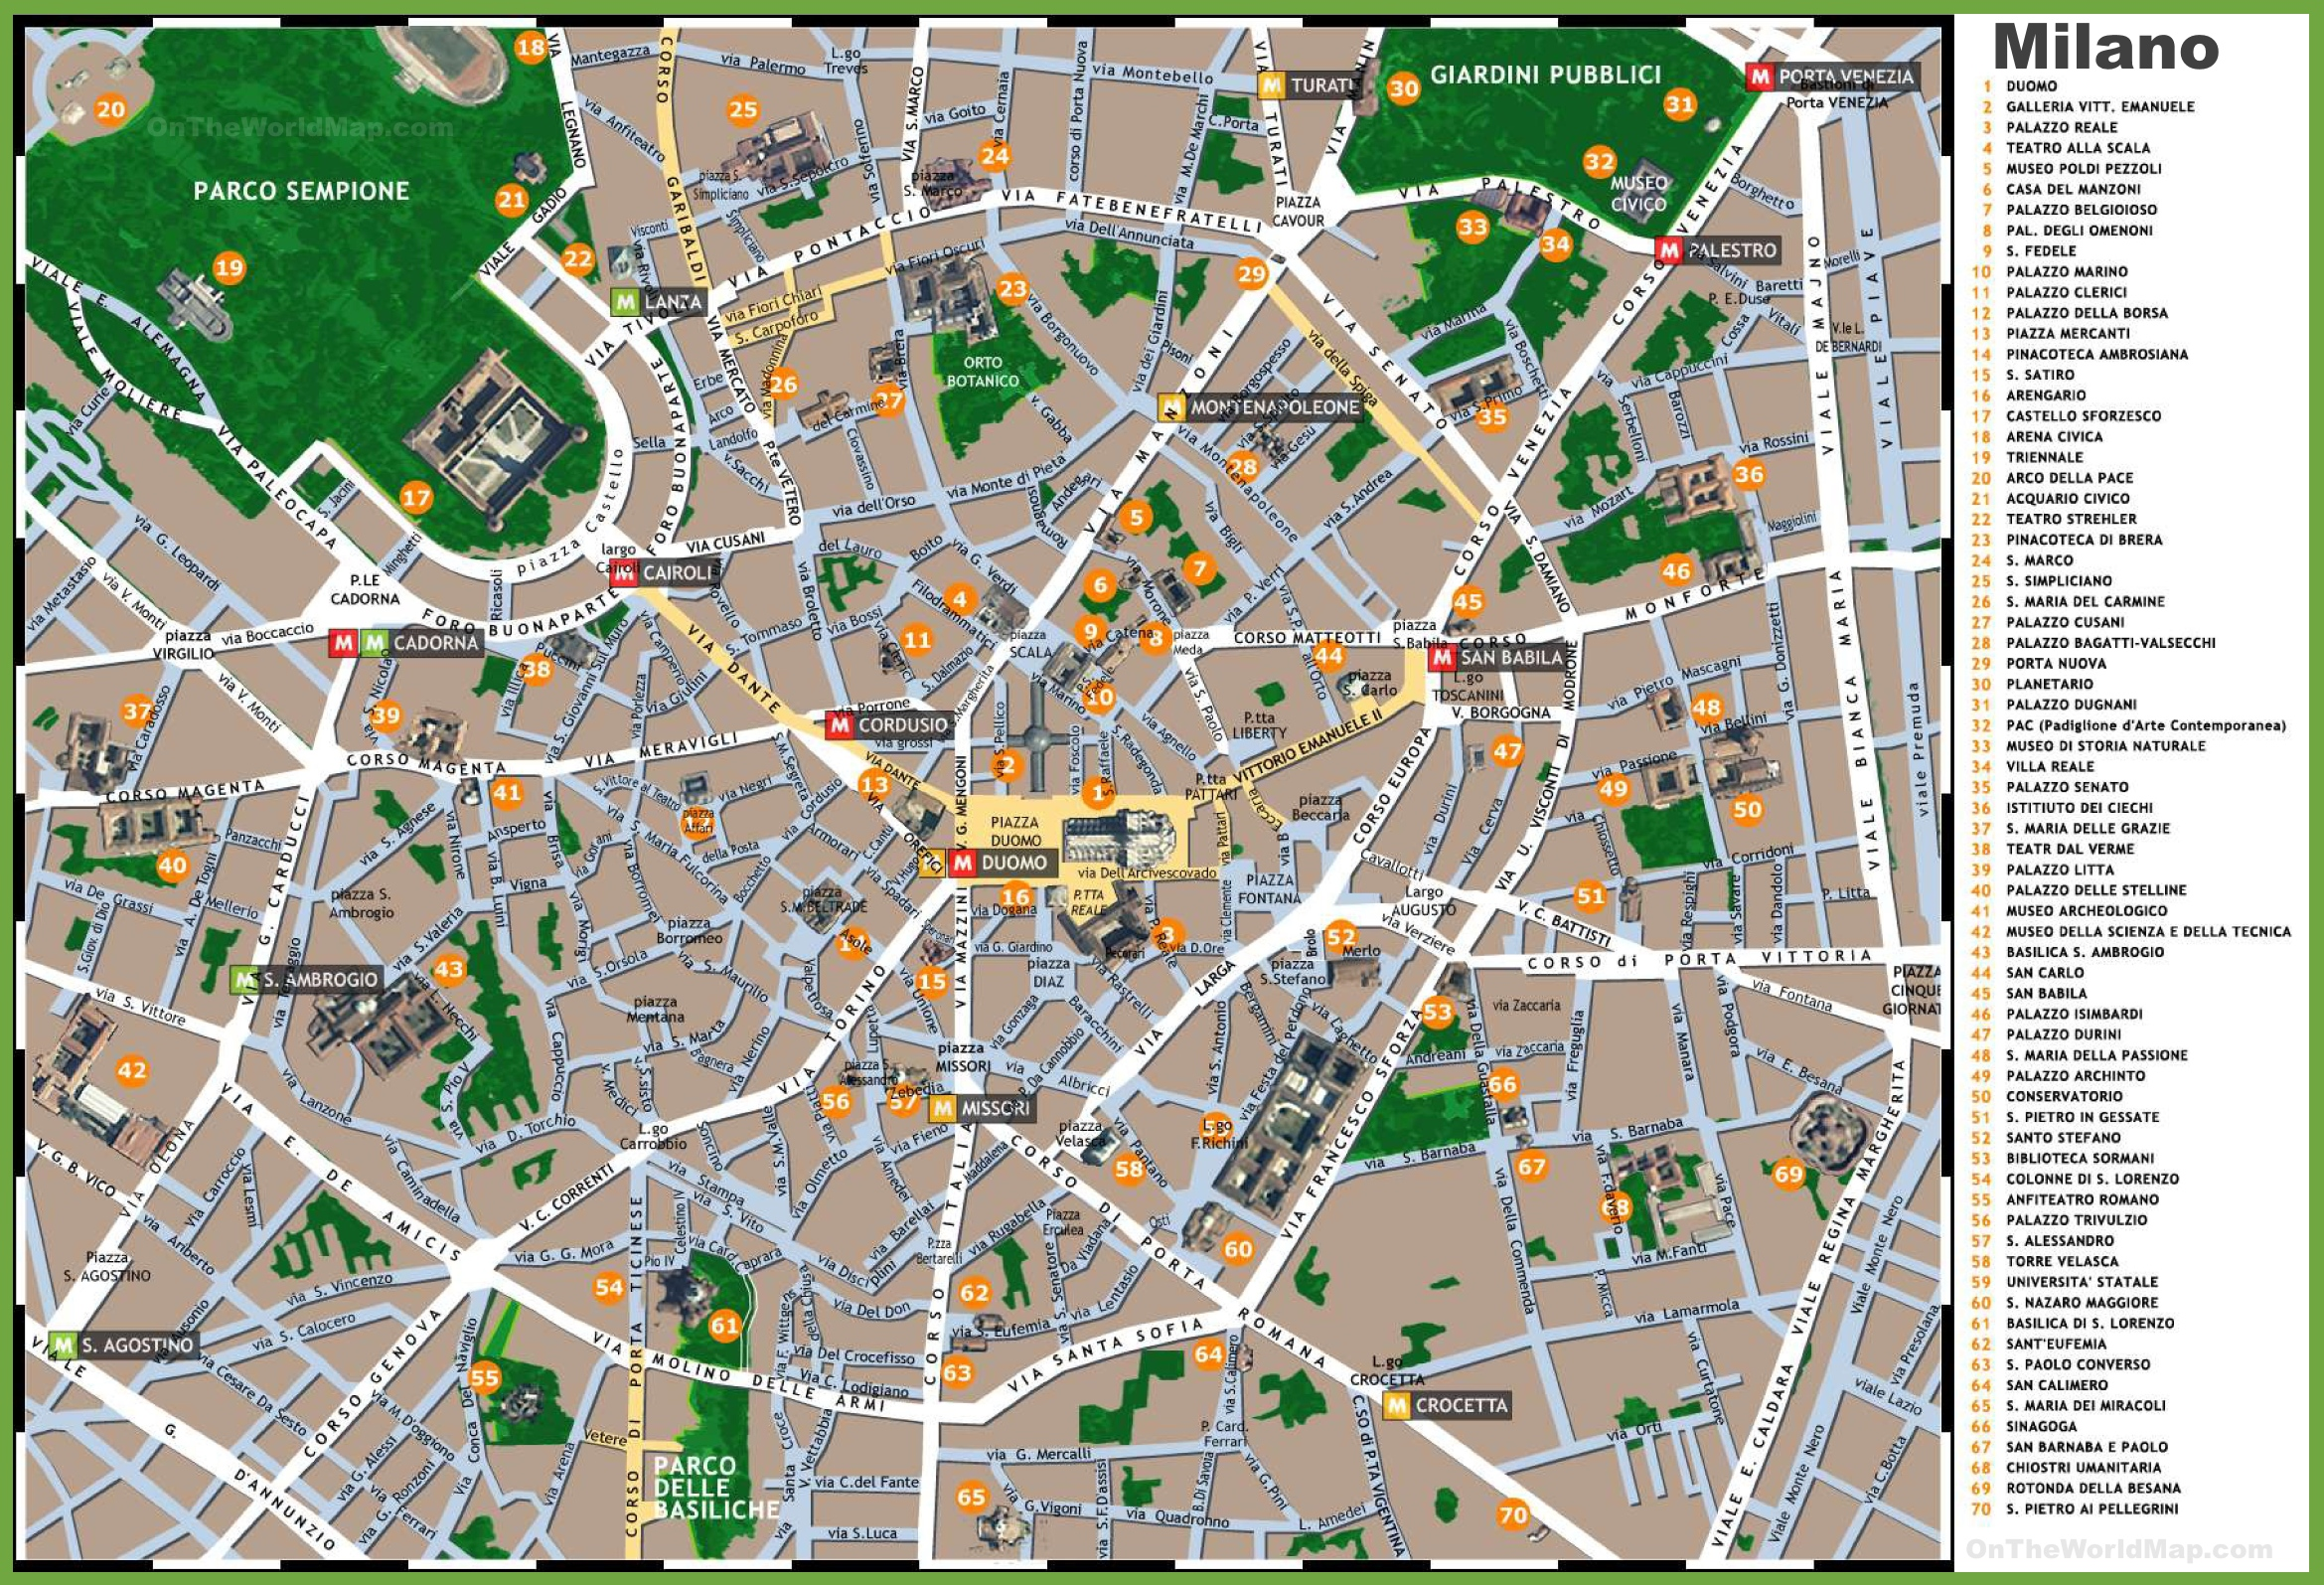 Milan sightseeing map milan sightseeing map gumiabroncs Images